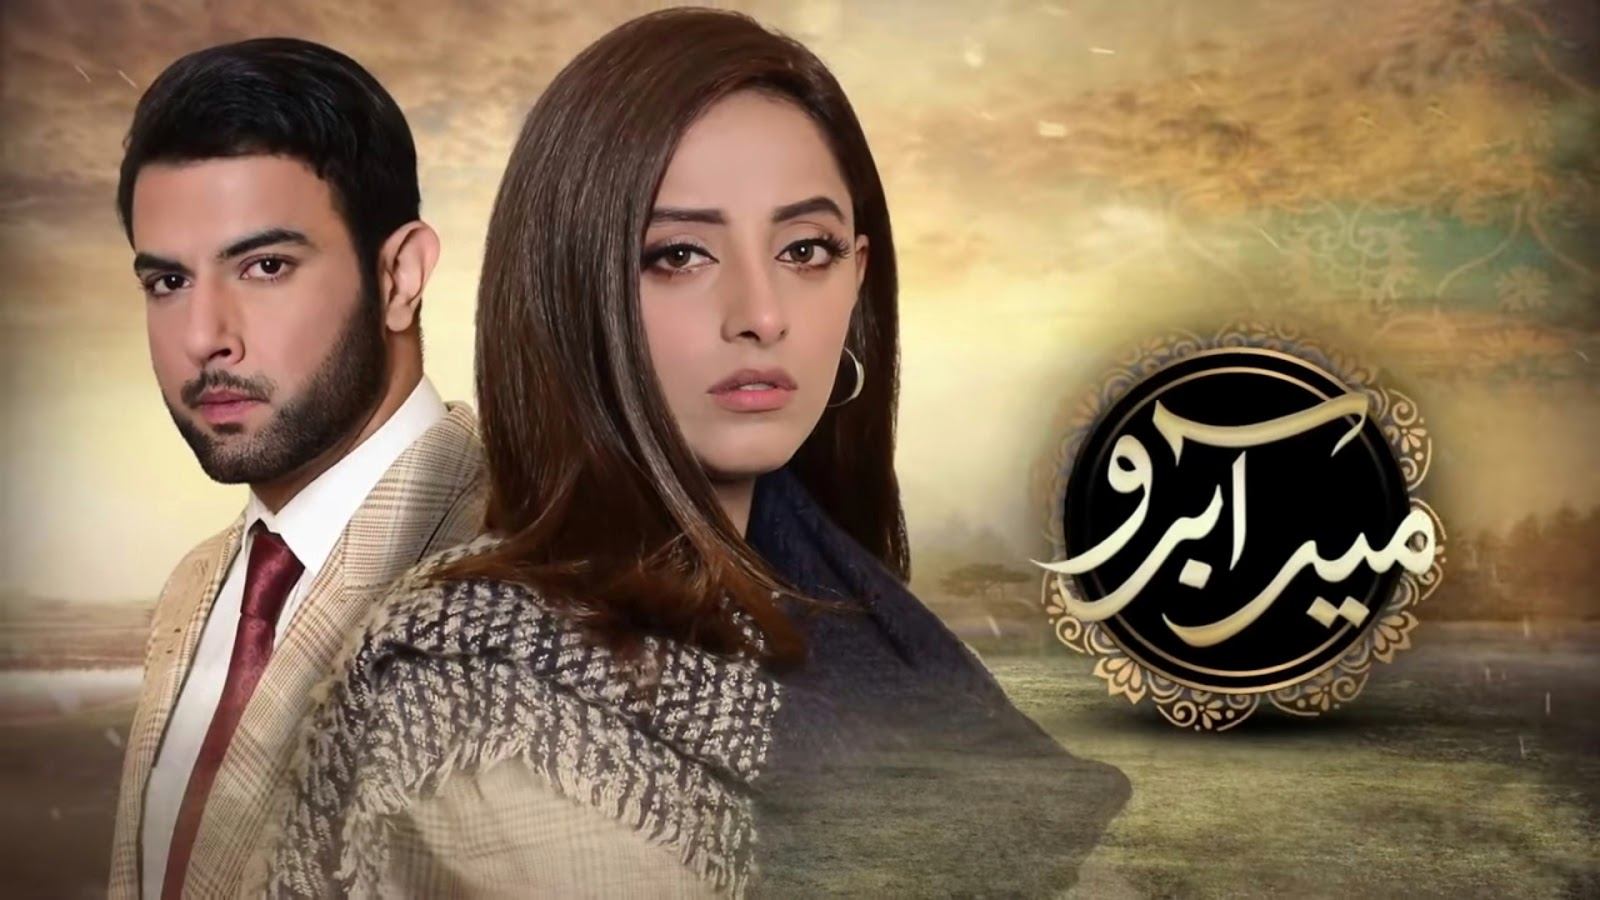 Ramblings of a Pakistani Drama Fan: Meer Abru: Interesting